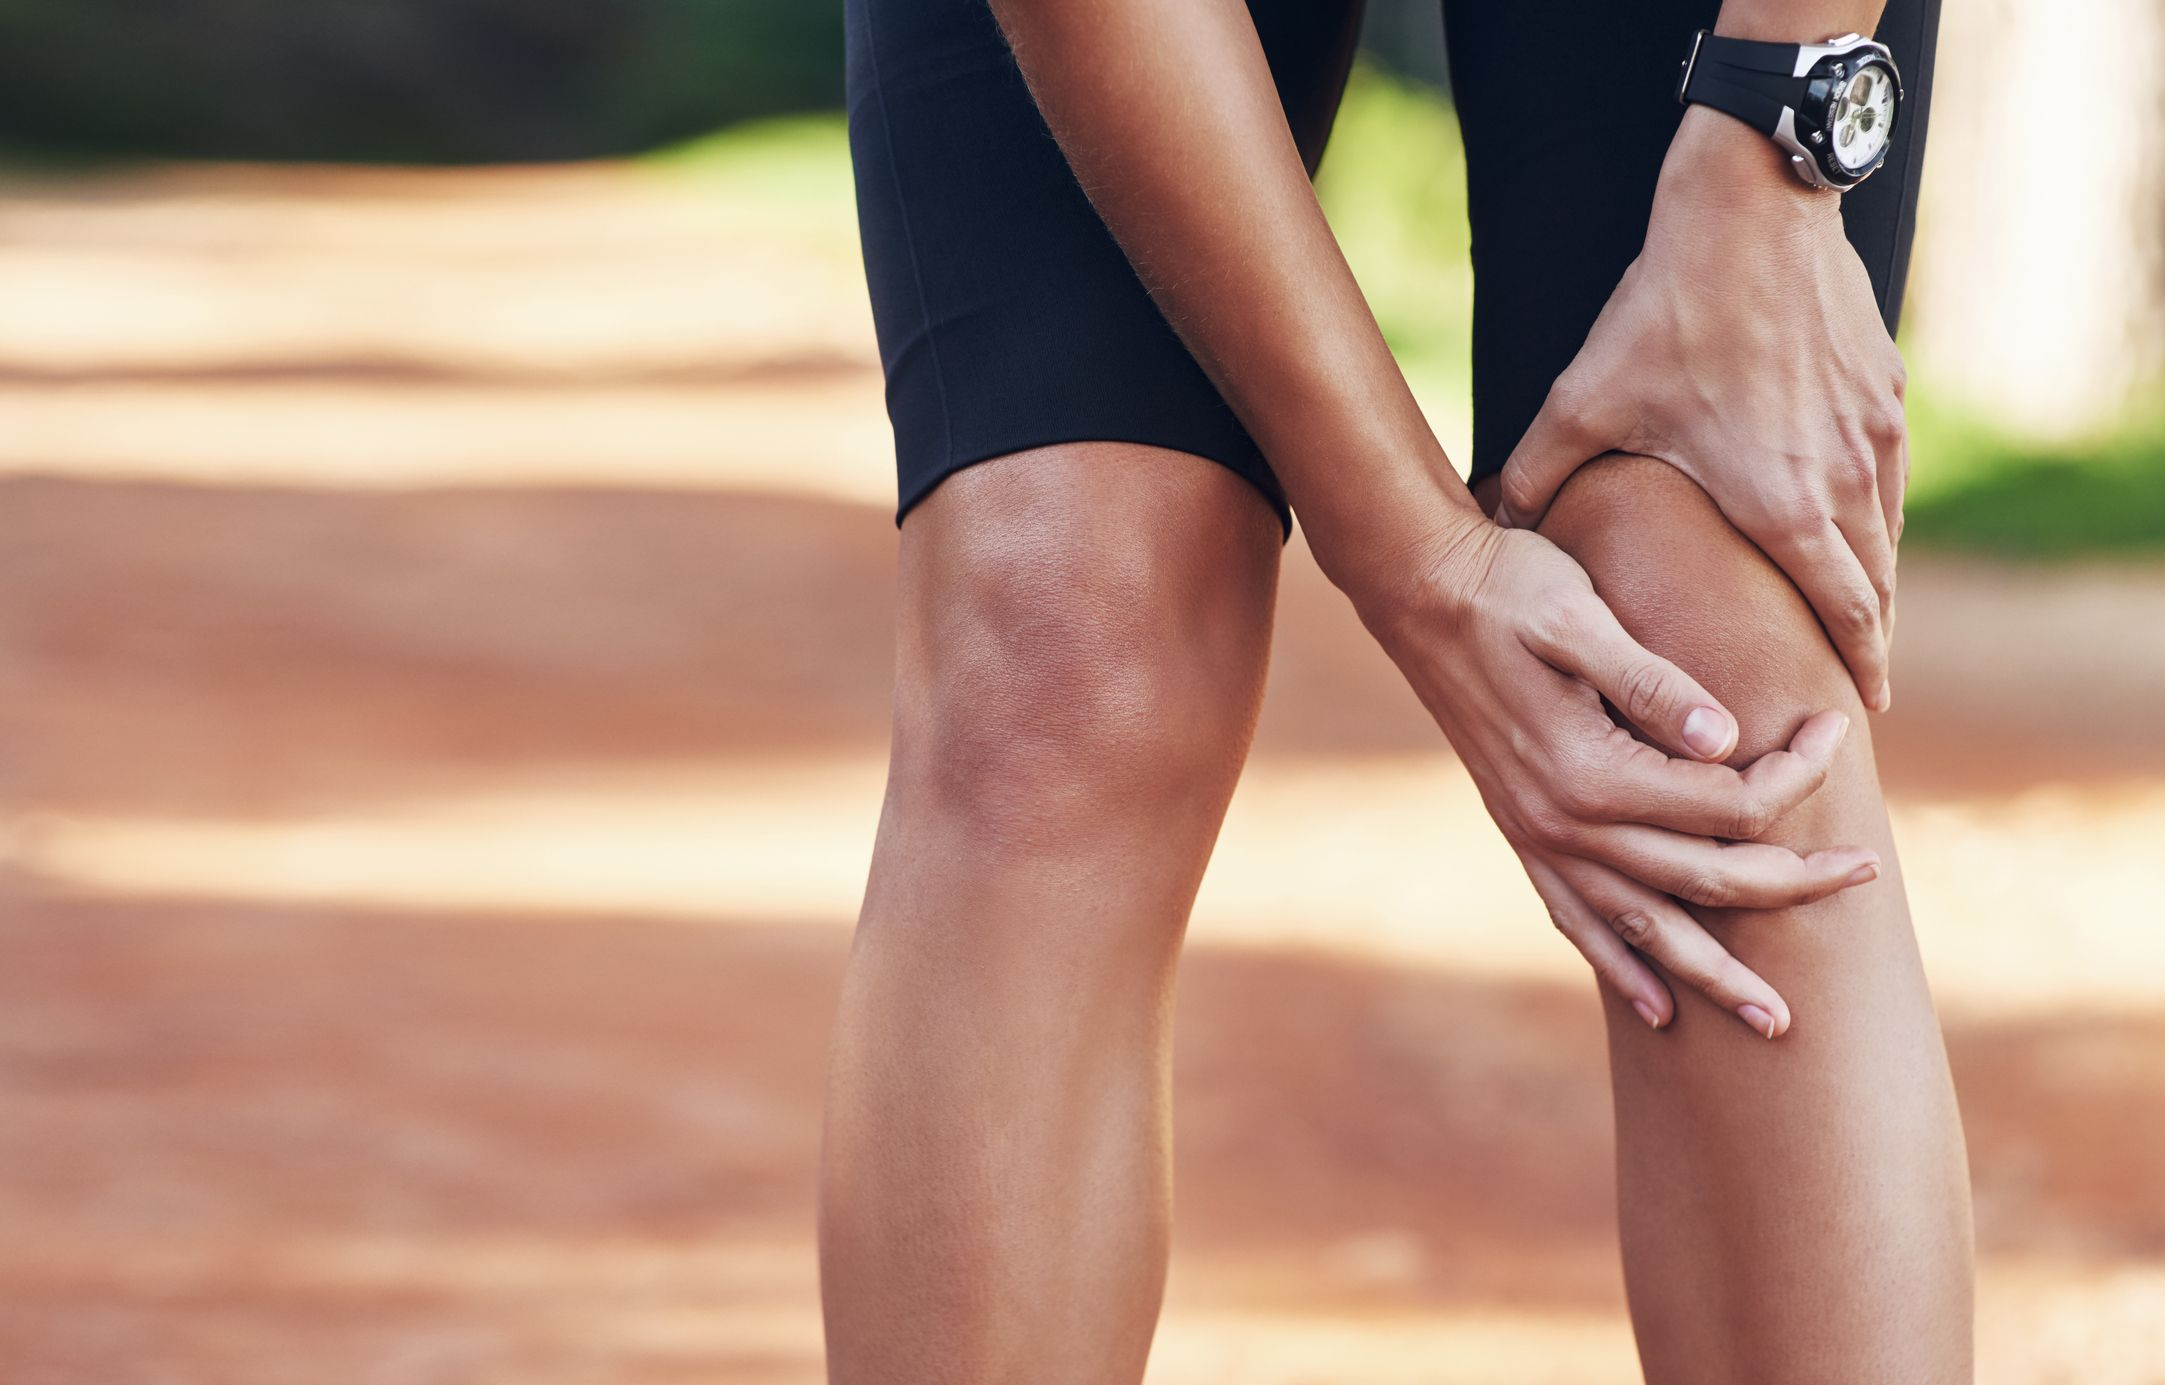 6 myths about knee pain and exercise